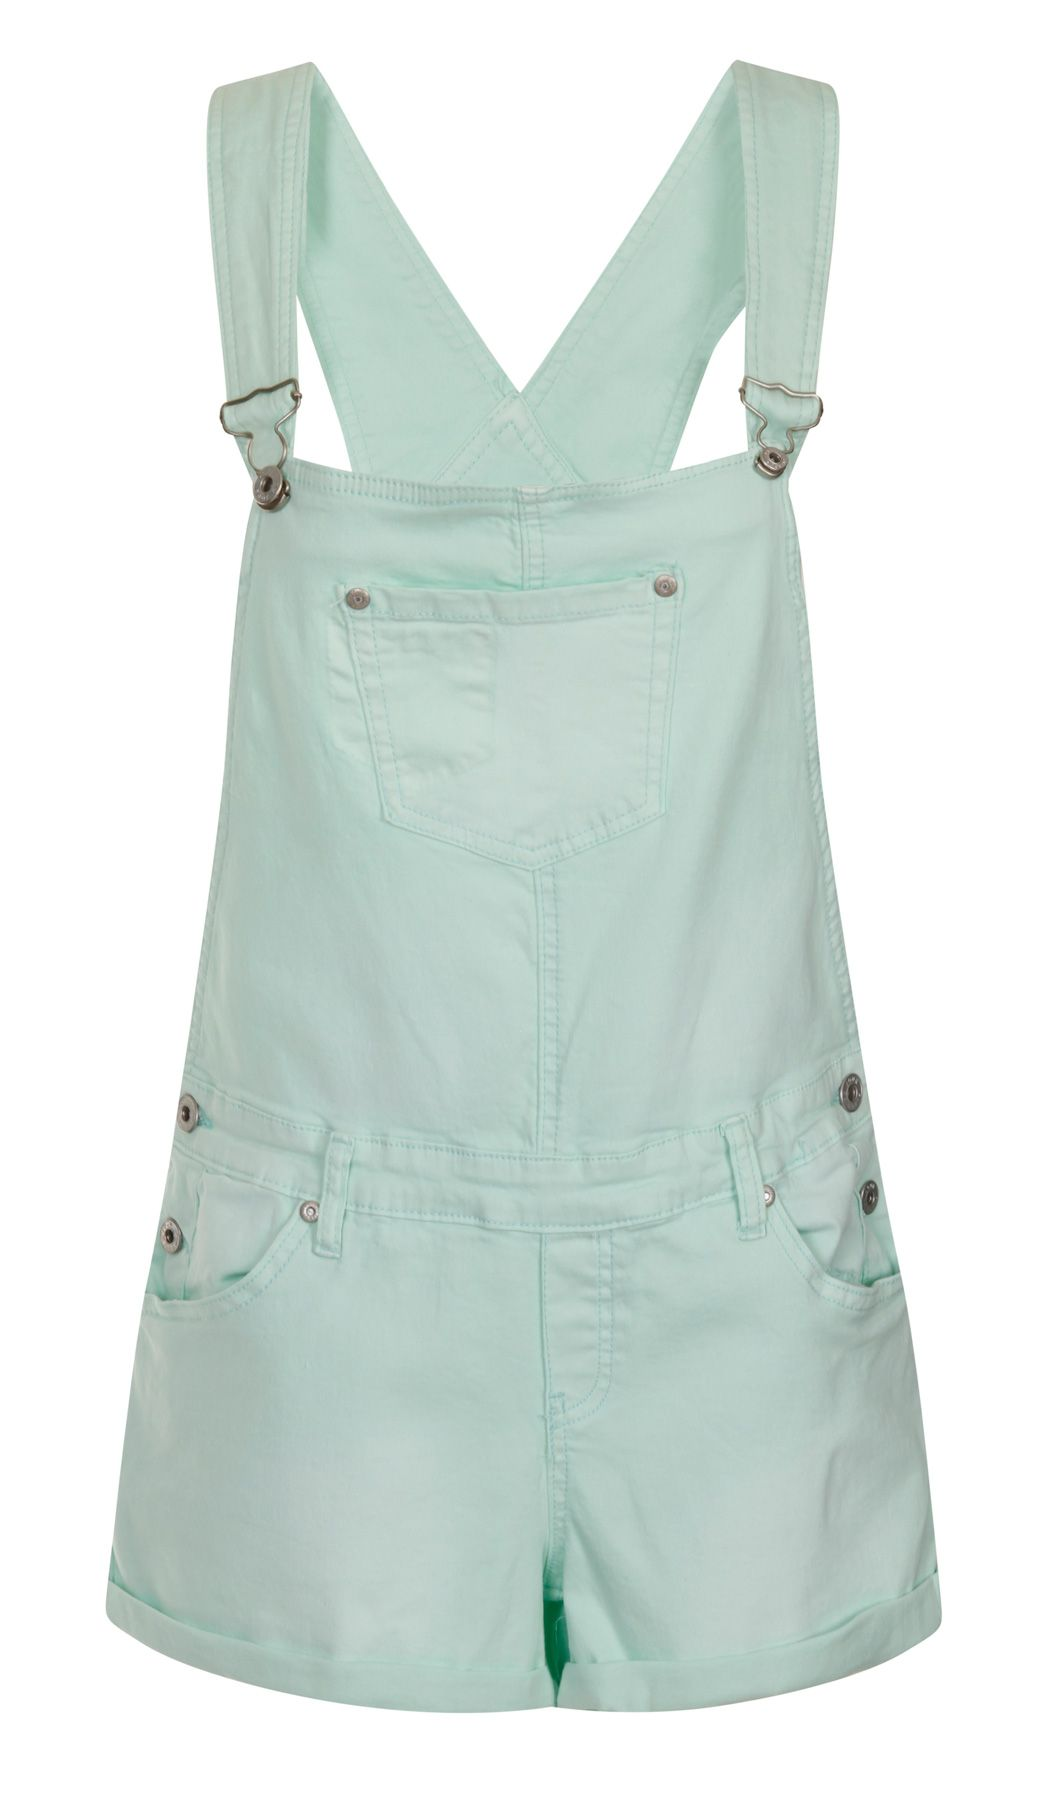 6735ec2074 Mint Green Dungaree Shorts in slightly stretchy soft denim with distressing  detail. £24.99 #dungarees #dungareeshorts #overalls